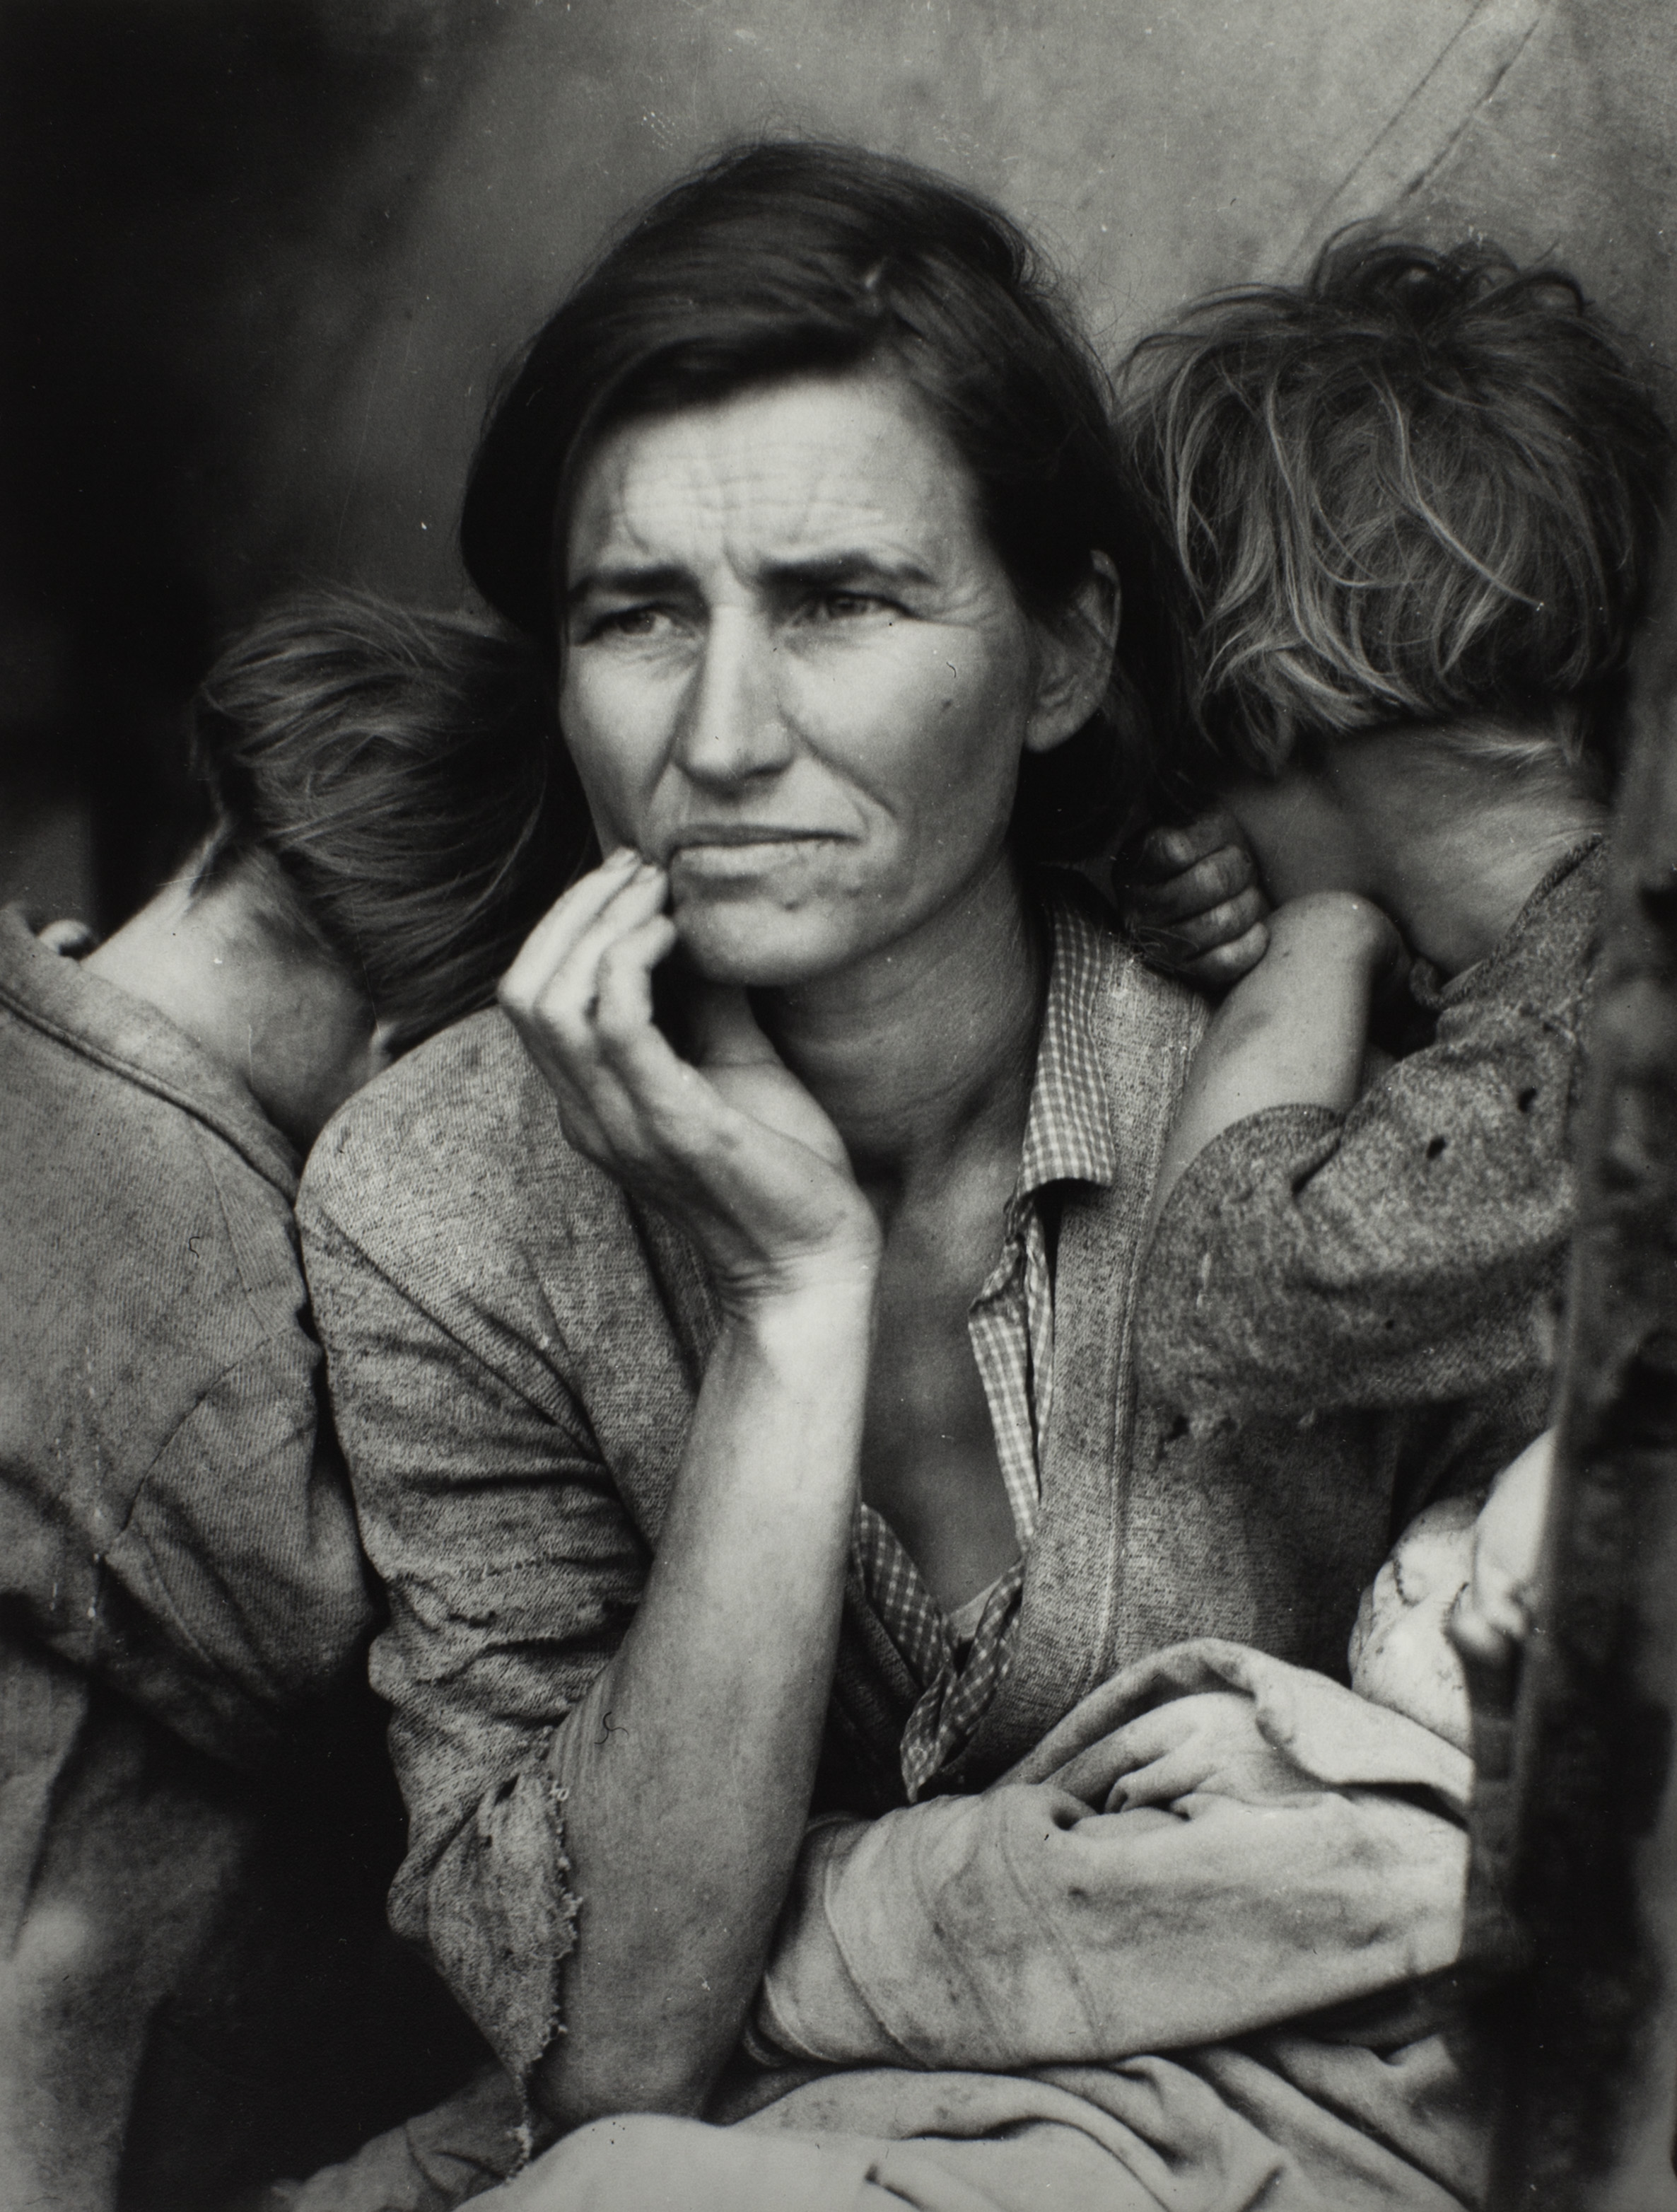 Dorothea Lange 1895-1965, Migrant Mother 1936,Photograph, gelatin silver print on paper,318 x 241 mm,The Sir Elton John Photography Collection.